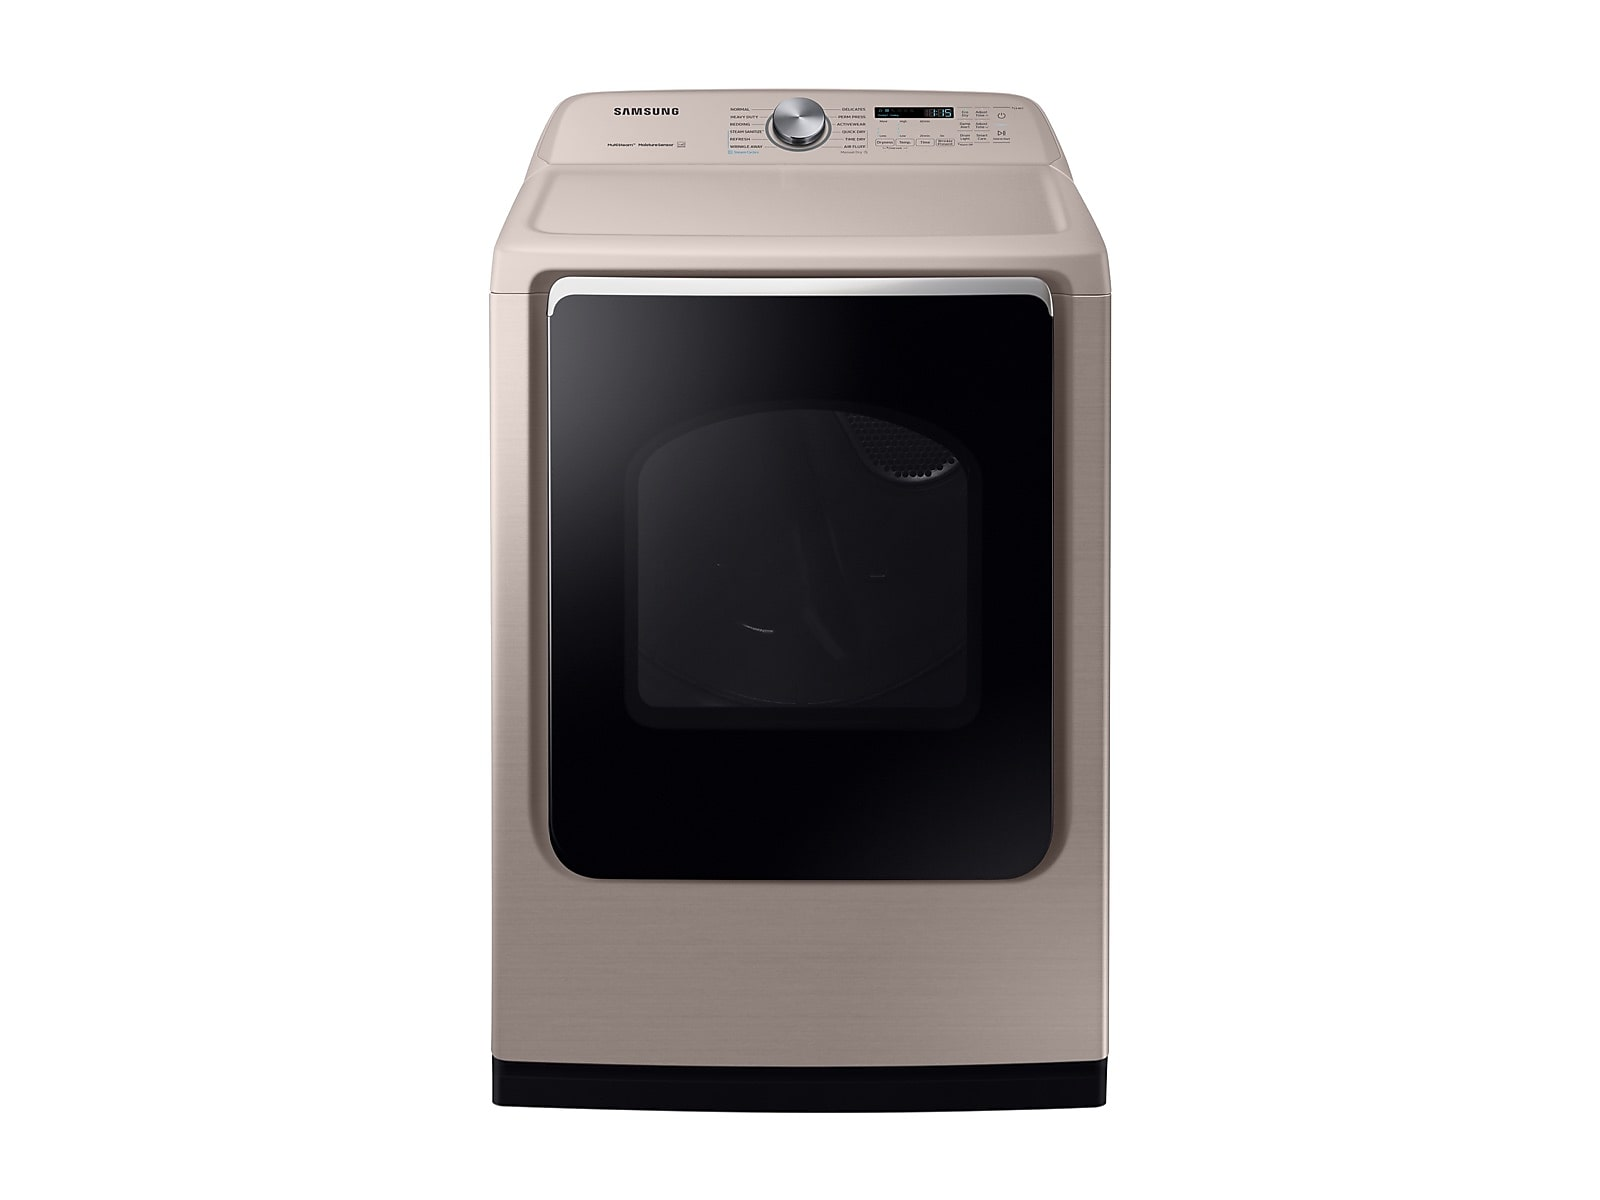 Samsung coupon: Samsung 7.4 cu. ft. Electric Dryer with Steam Sanitize+ in Champagne(DVE54R7600C/A3)